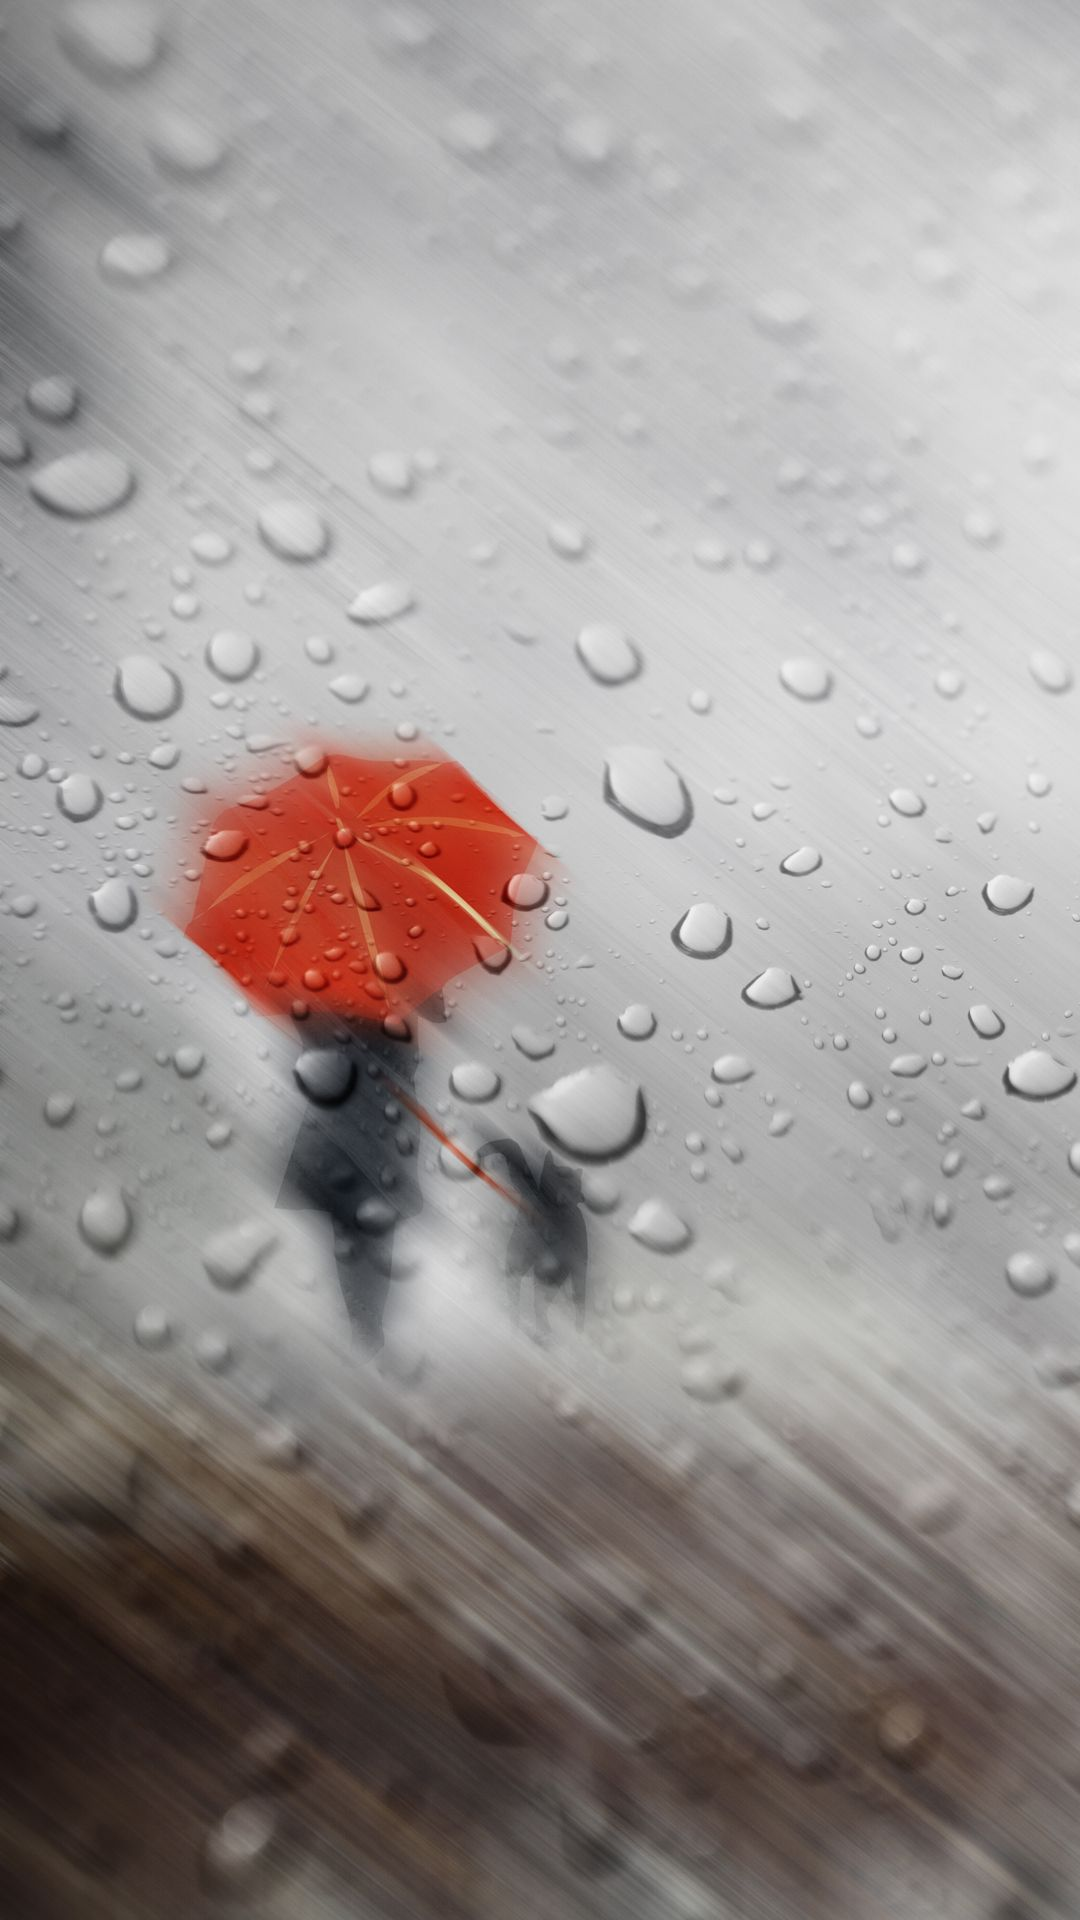 Download Wallpaper Mobile Rain - 9ef56d6f3458aff8fabcae8efff8ee6a  Perfect Image Reference_80969.jpg